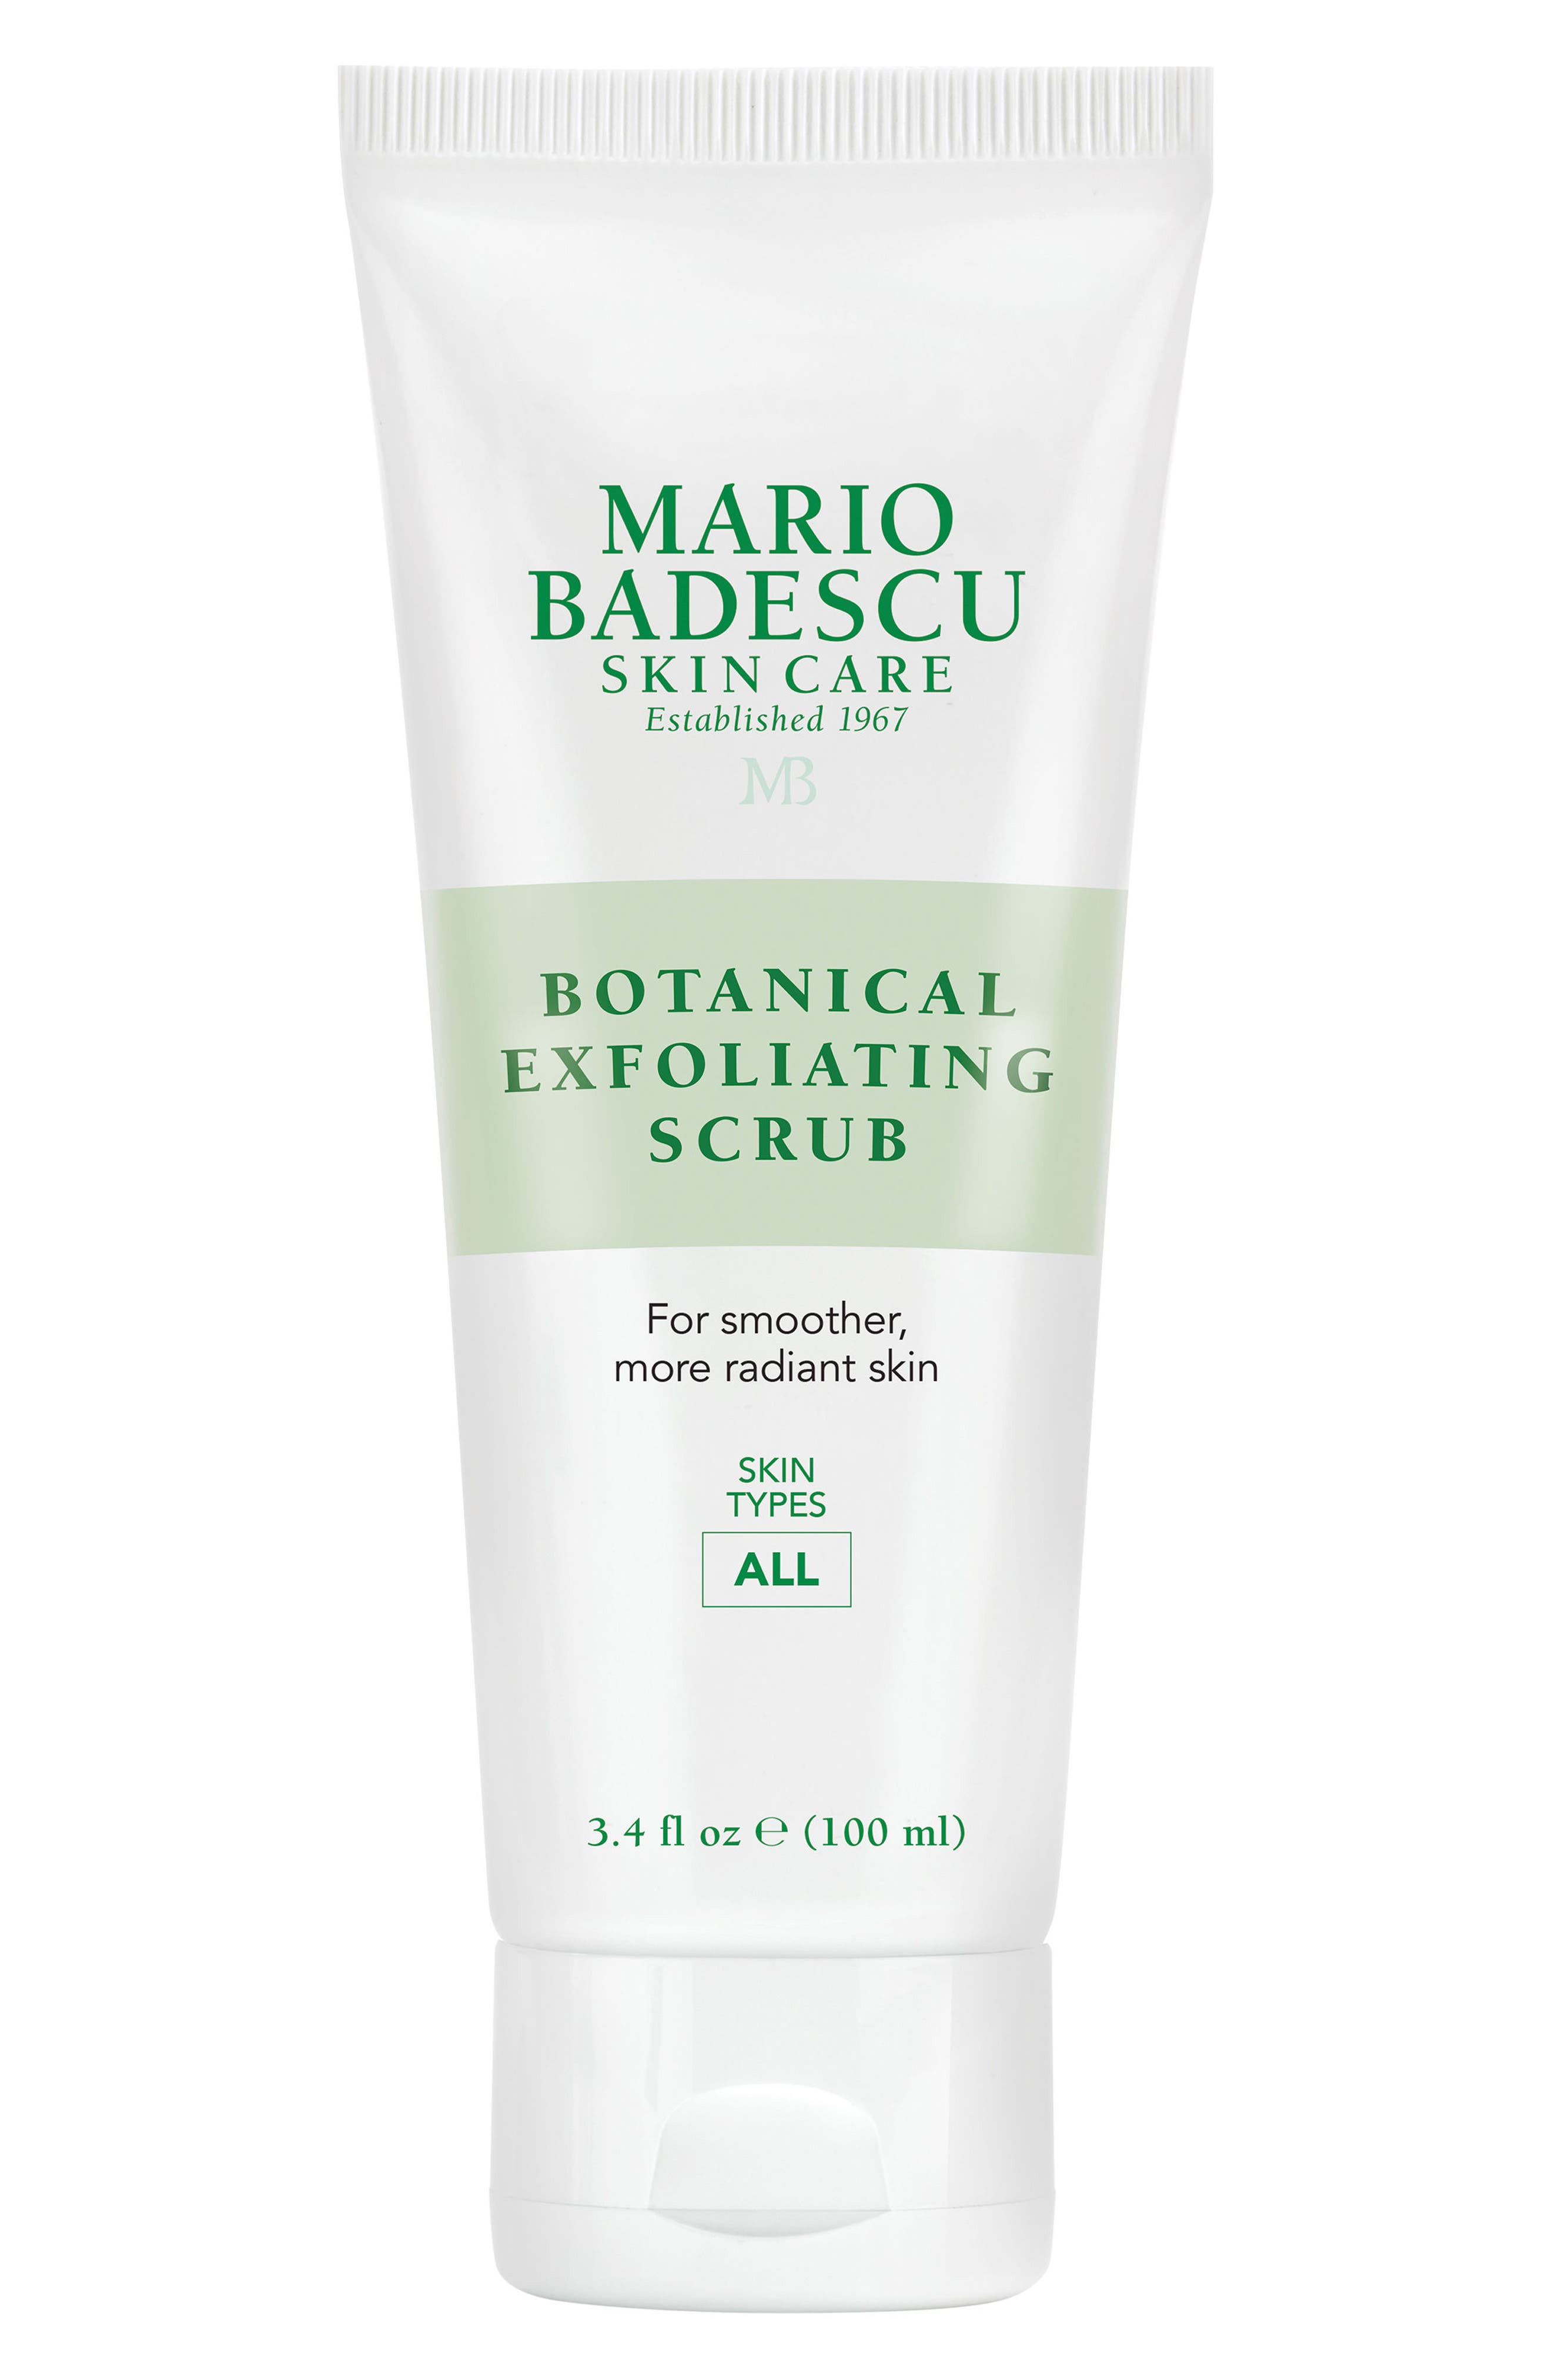 Image result for mario badescu botanical exfoliating scrub